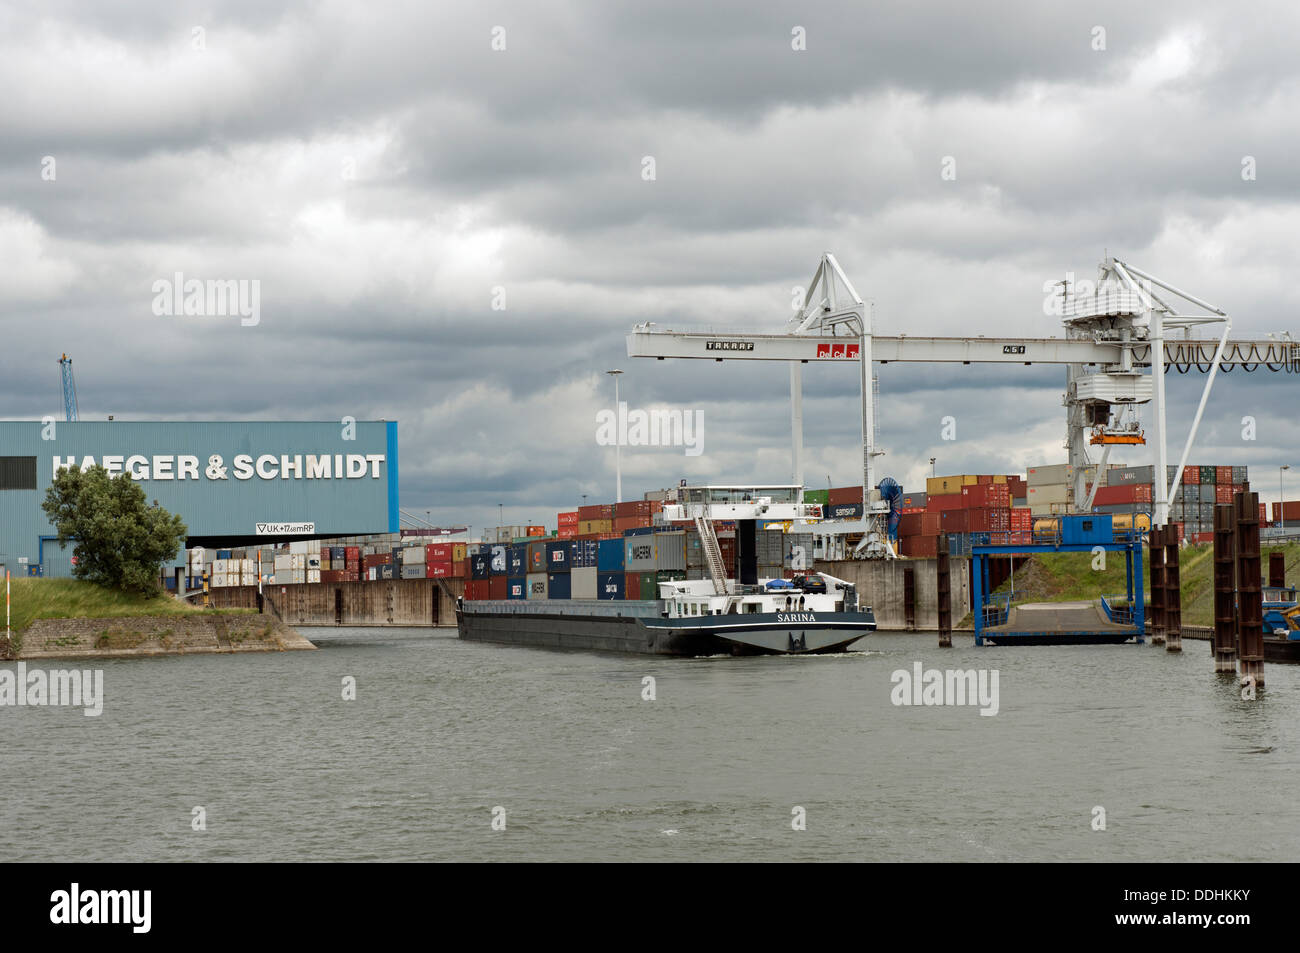 Duisport, Duisburg, Germany. - Stock Image